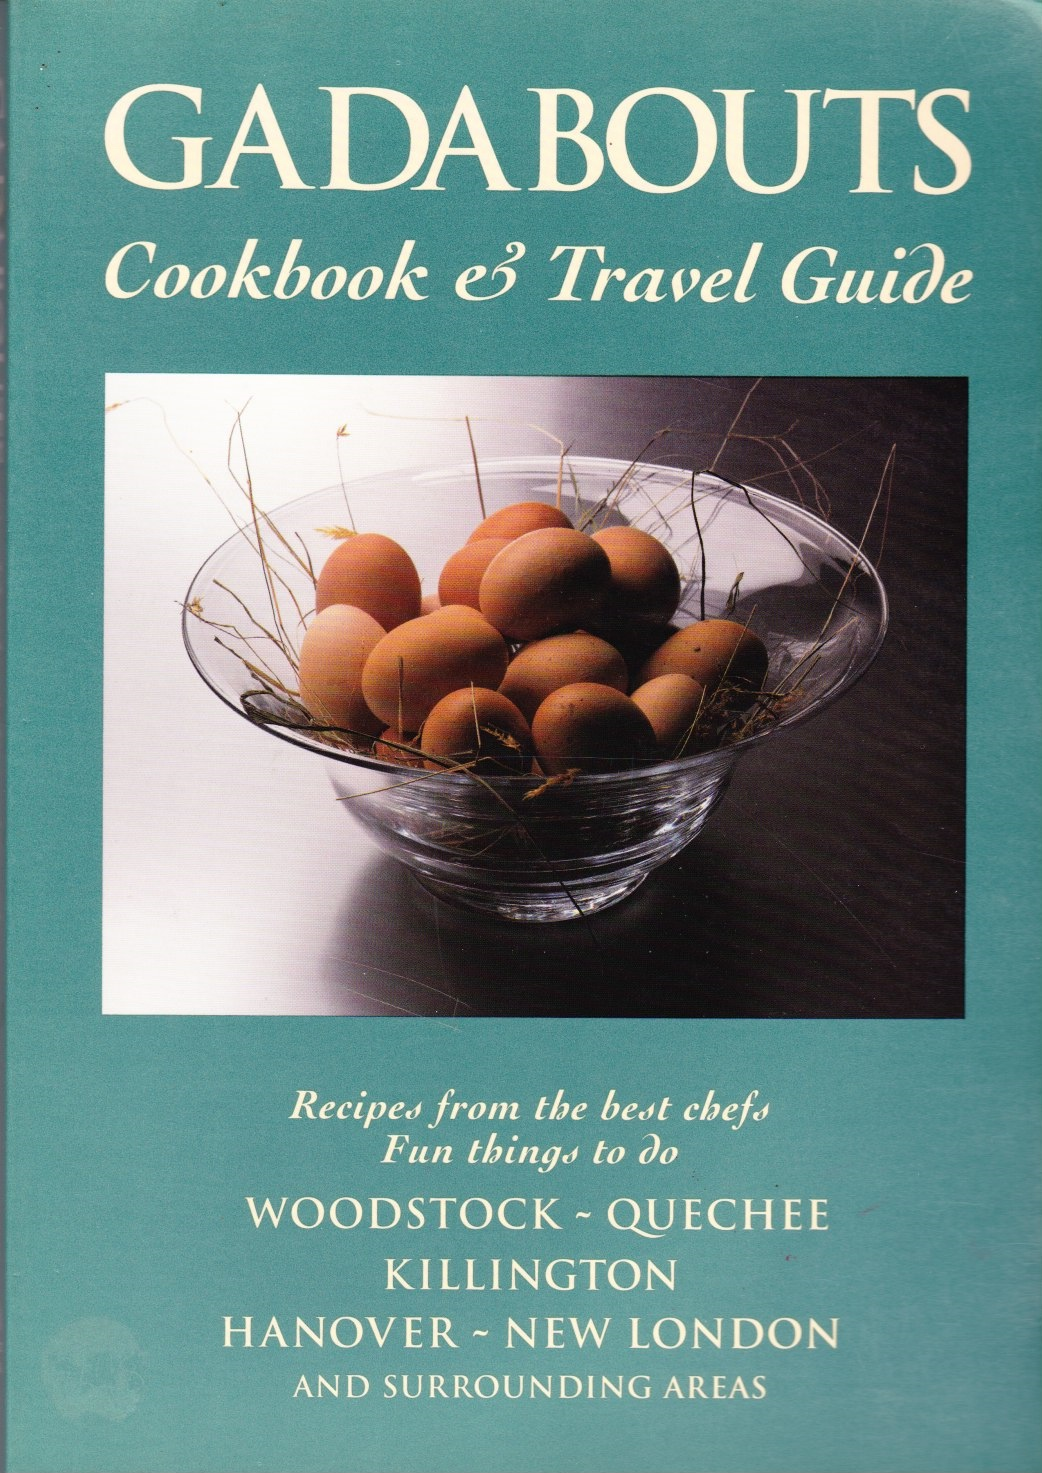 Image for Gadabouts Cookbook & Travel Guide